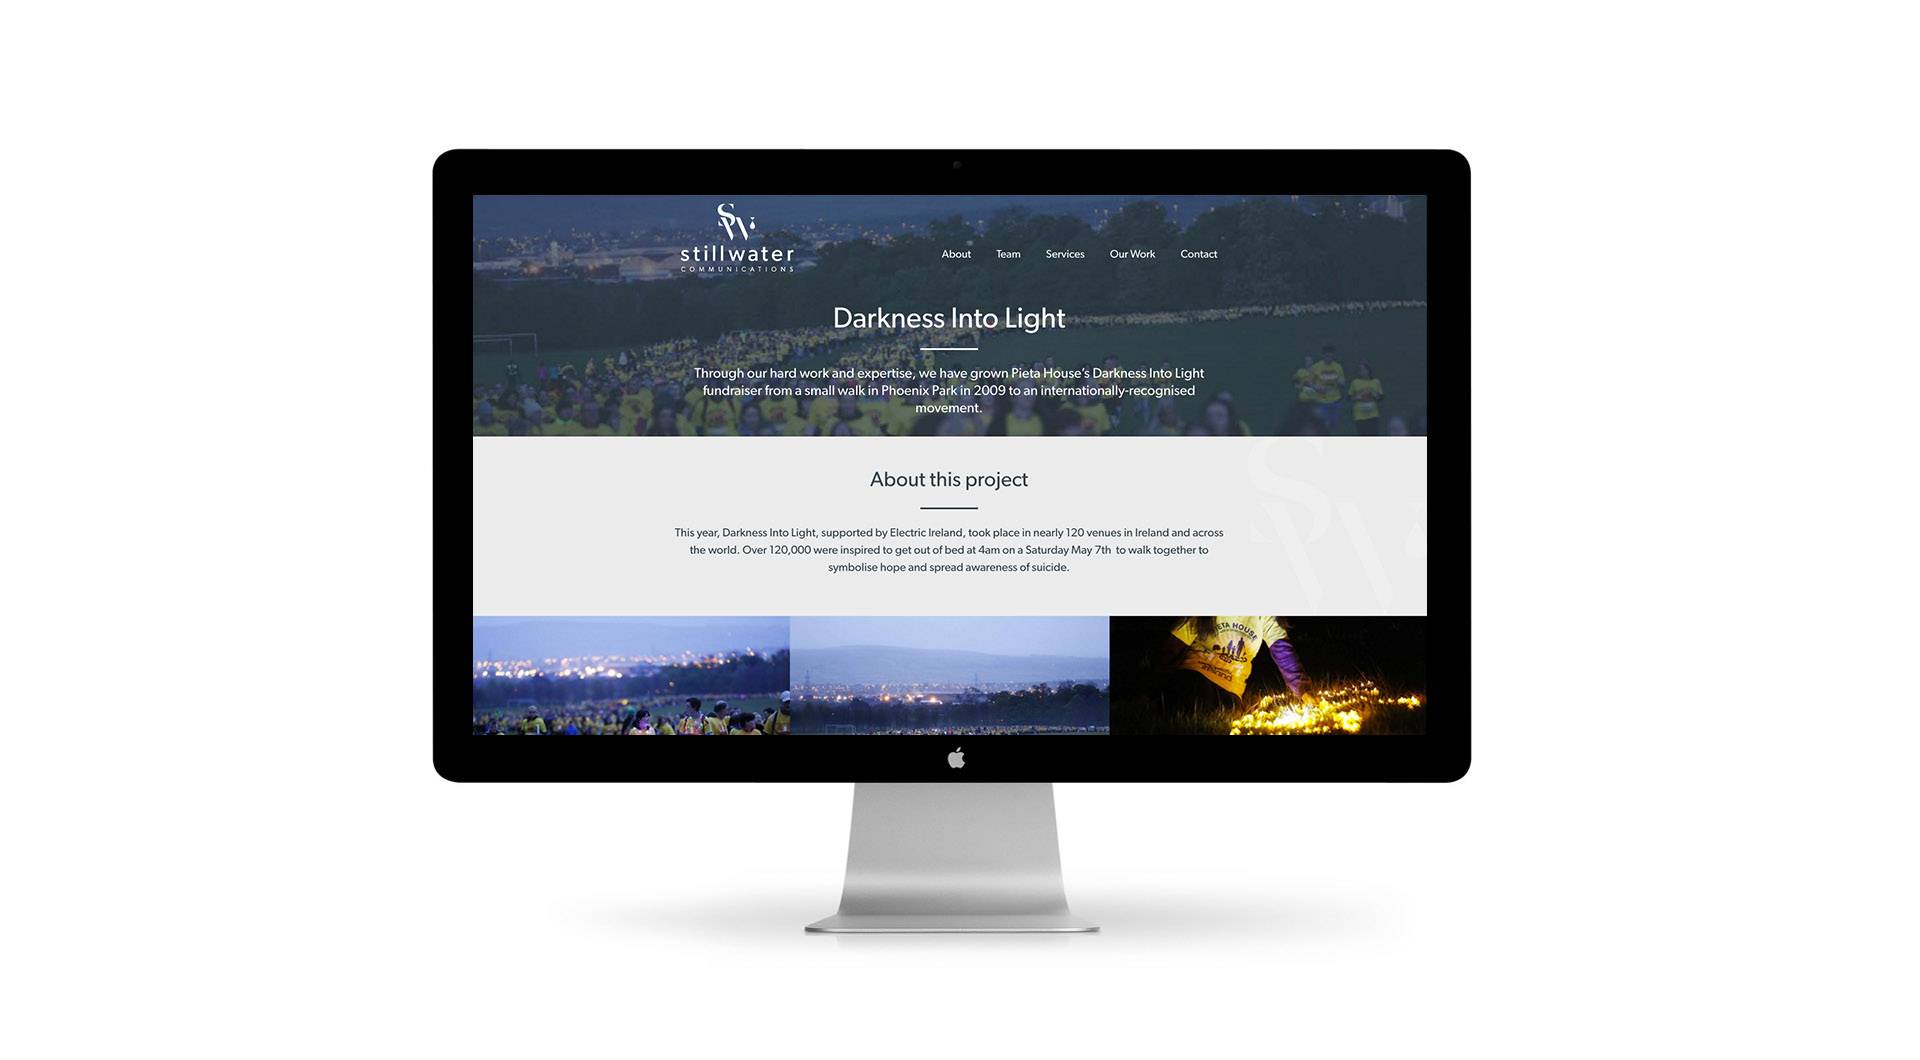 Stillwater Communications Website Design Projects Page Darkness Into Light Layout.